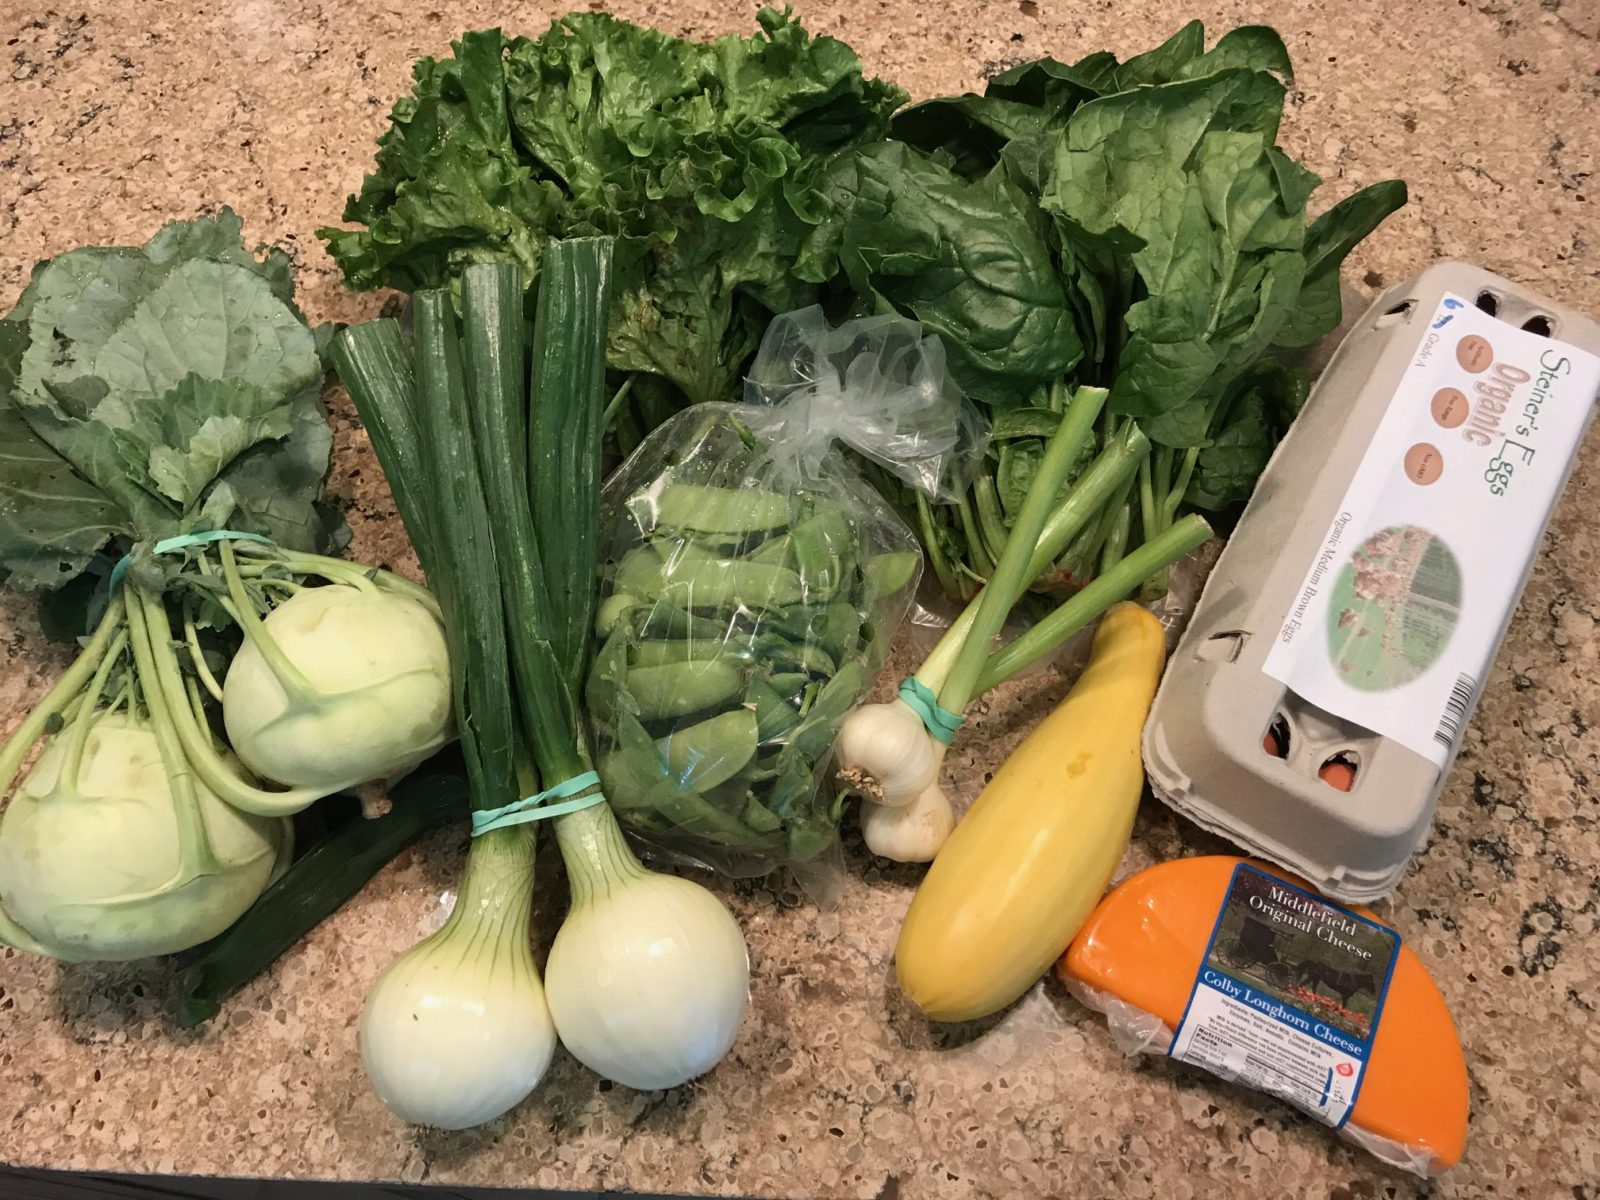 Onions, leaf lettuce, garlic, kohlrabi, yellow squash, pea pods, eggs and cheese